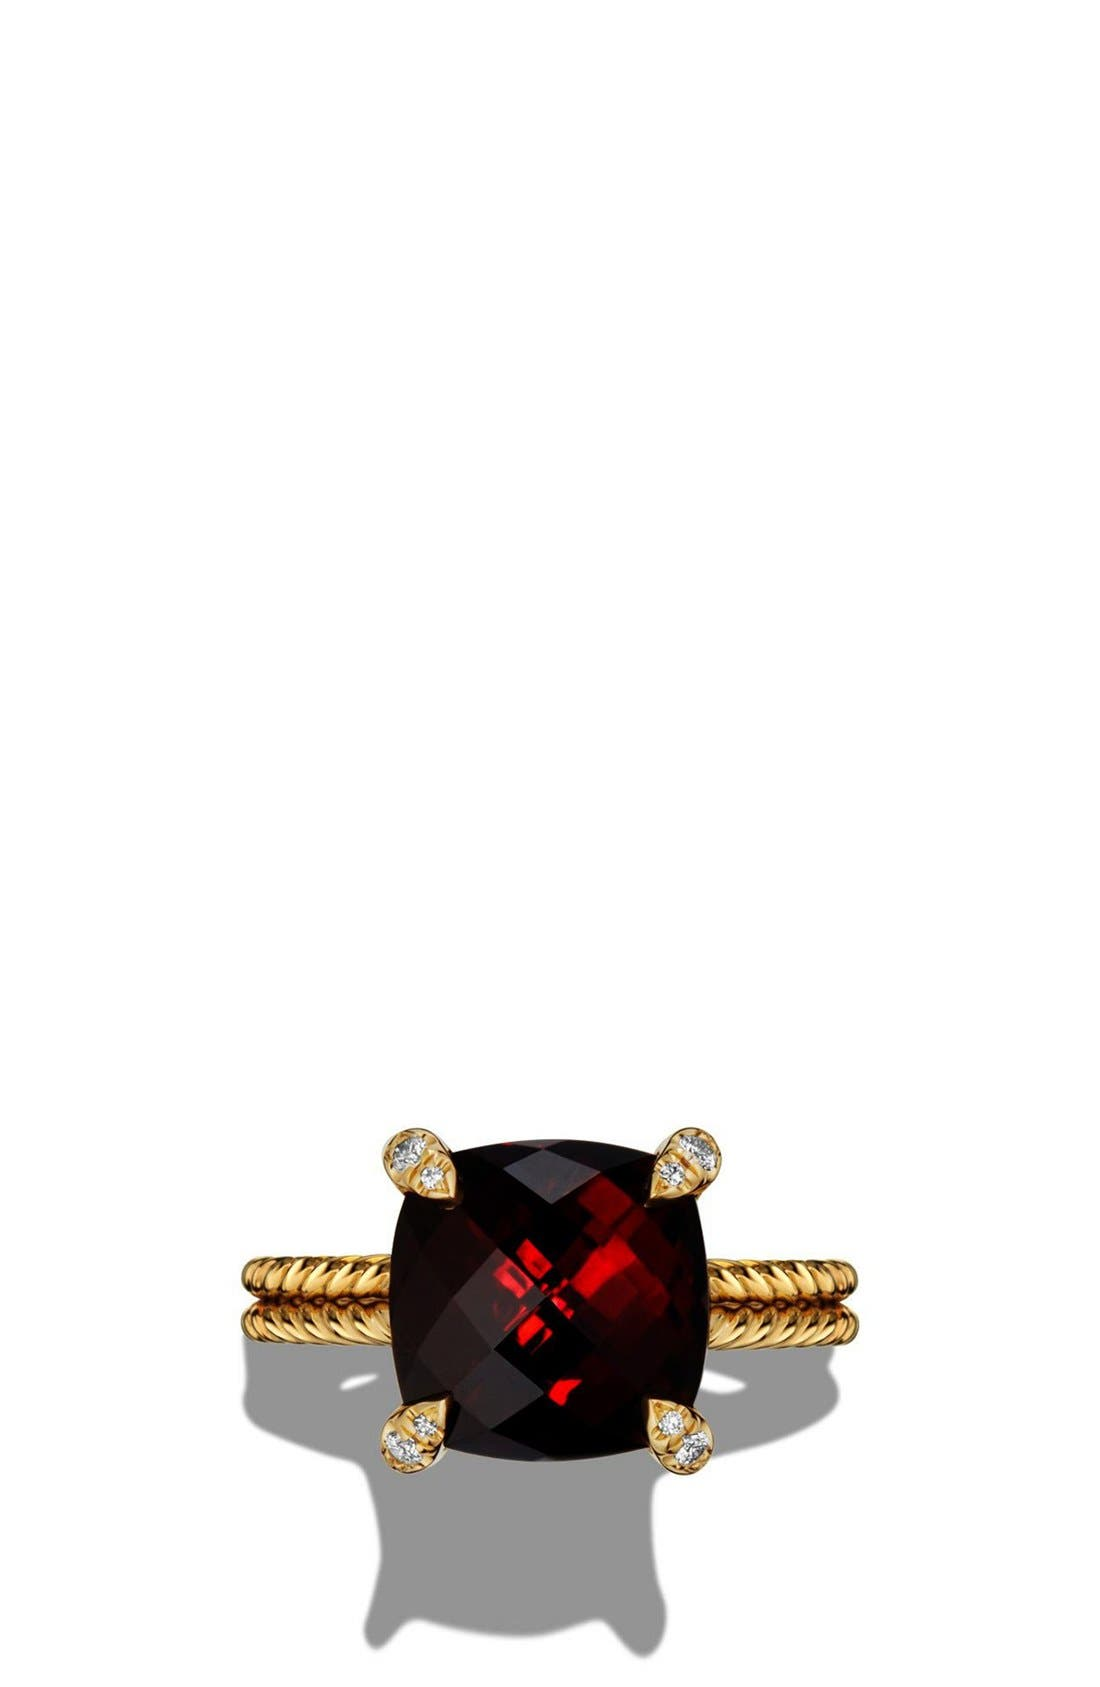 Châtelaine Ring with Hampton Blue Topaz and Diamonds in 18K Gold,                             Alternate thumbnail 4, color,                             GARNET